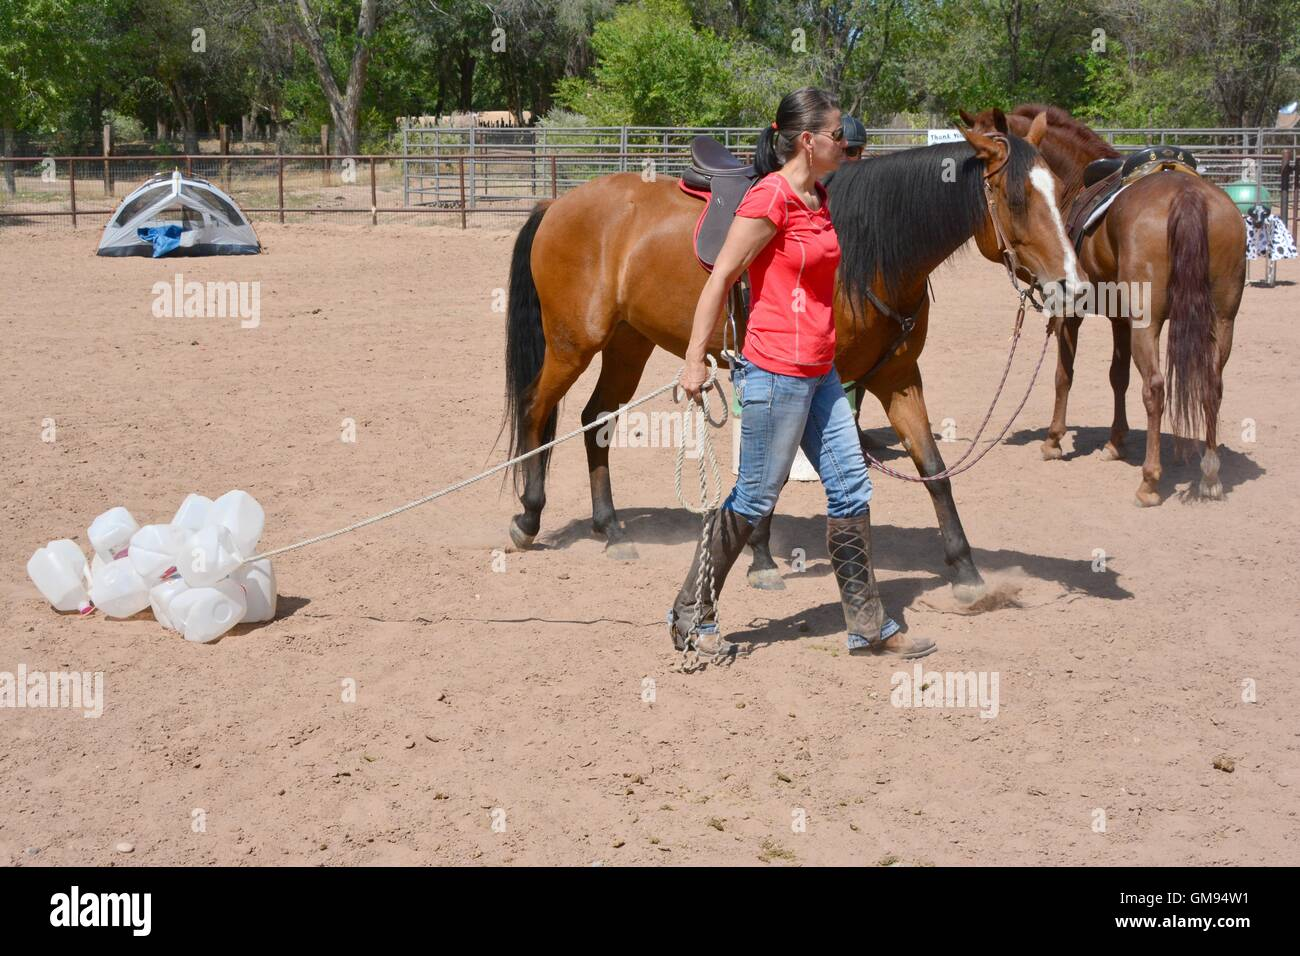 Arabian Horse learning about milk jug on a rope from her handler. New Mexico, USA - Stock Image